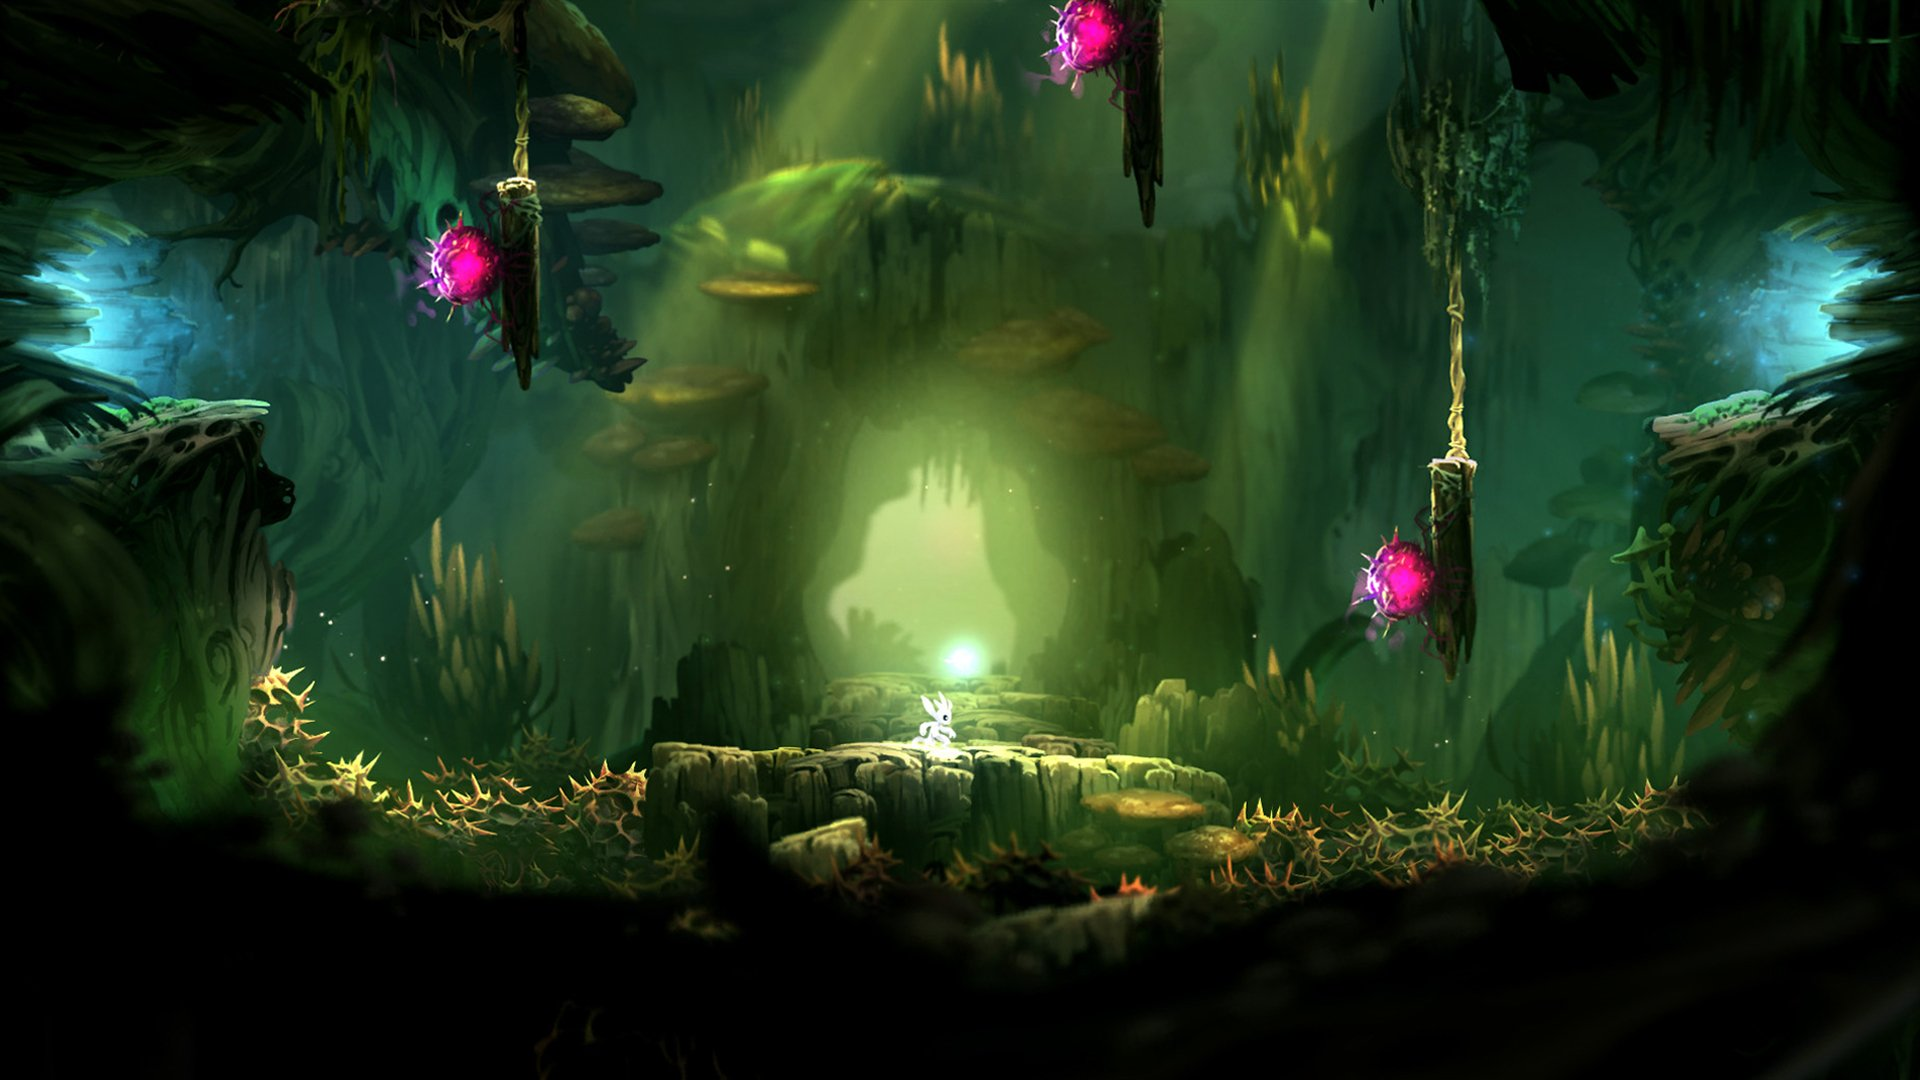 Ori And The Blind Forest Hd Wallpaper: Ori And The Blind Forest Full HD Wallpaper And Background